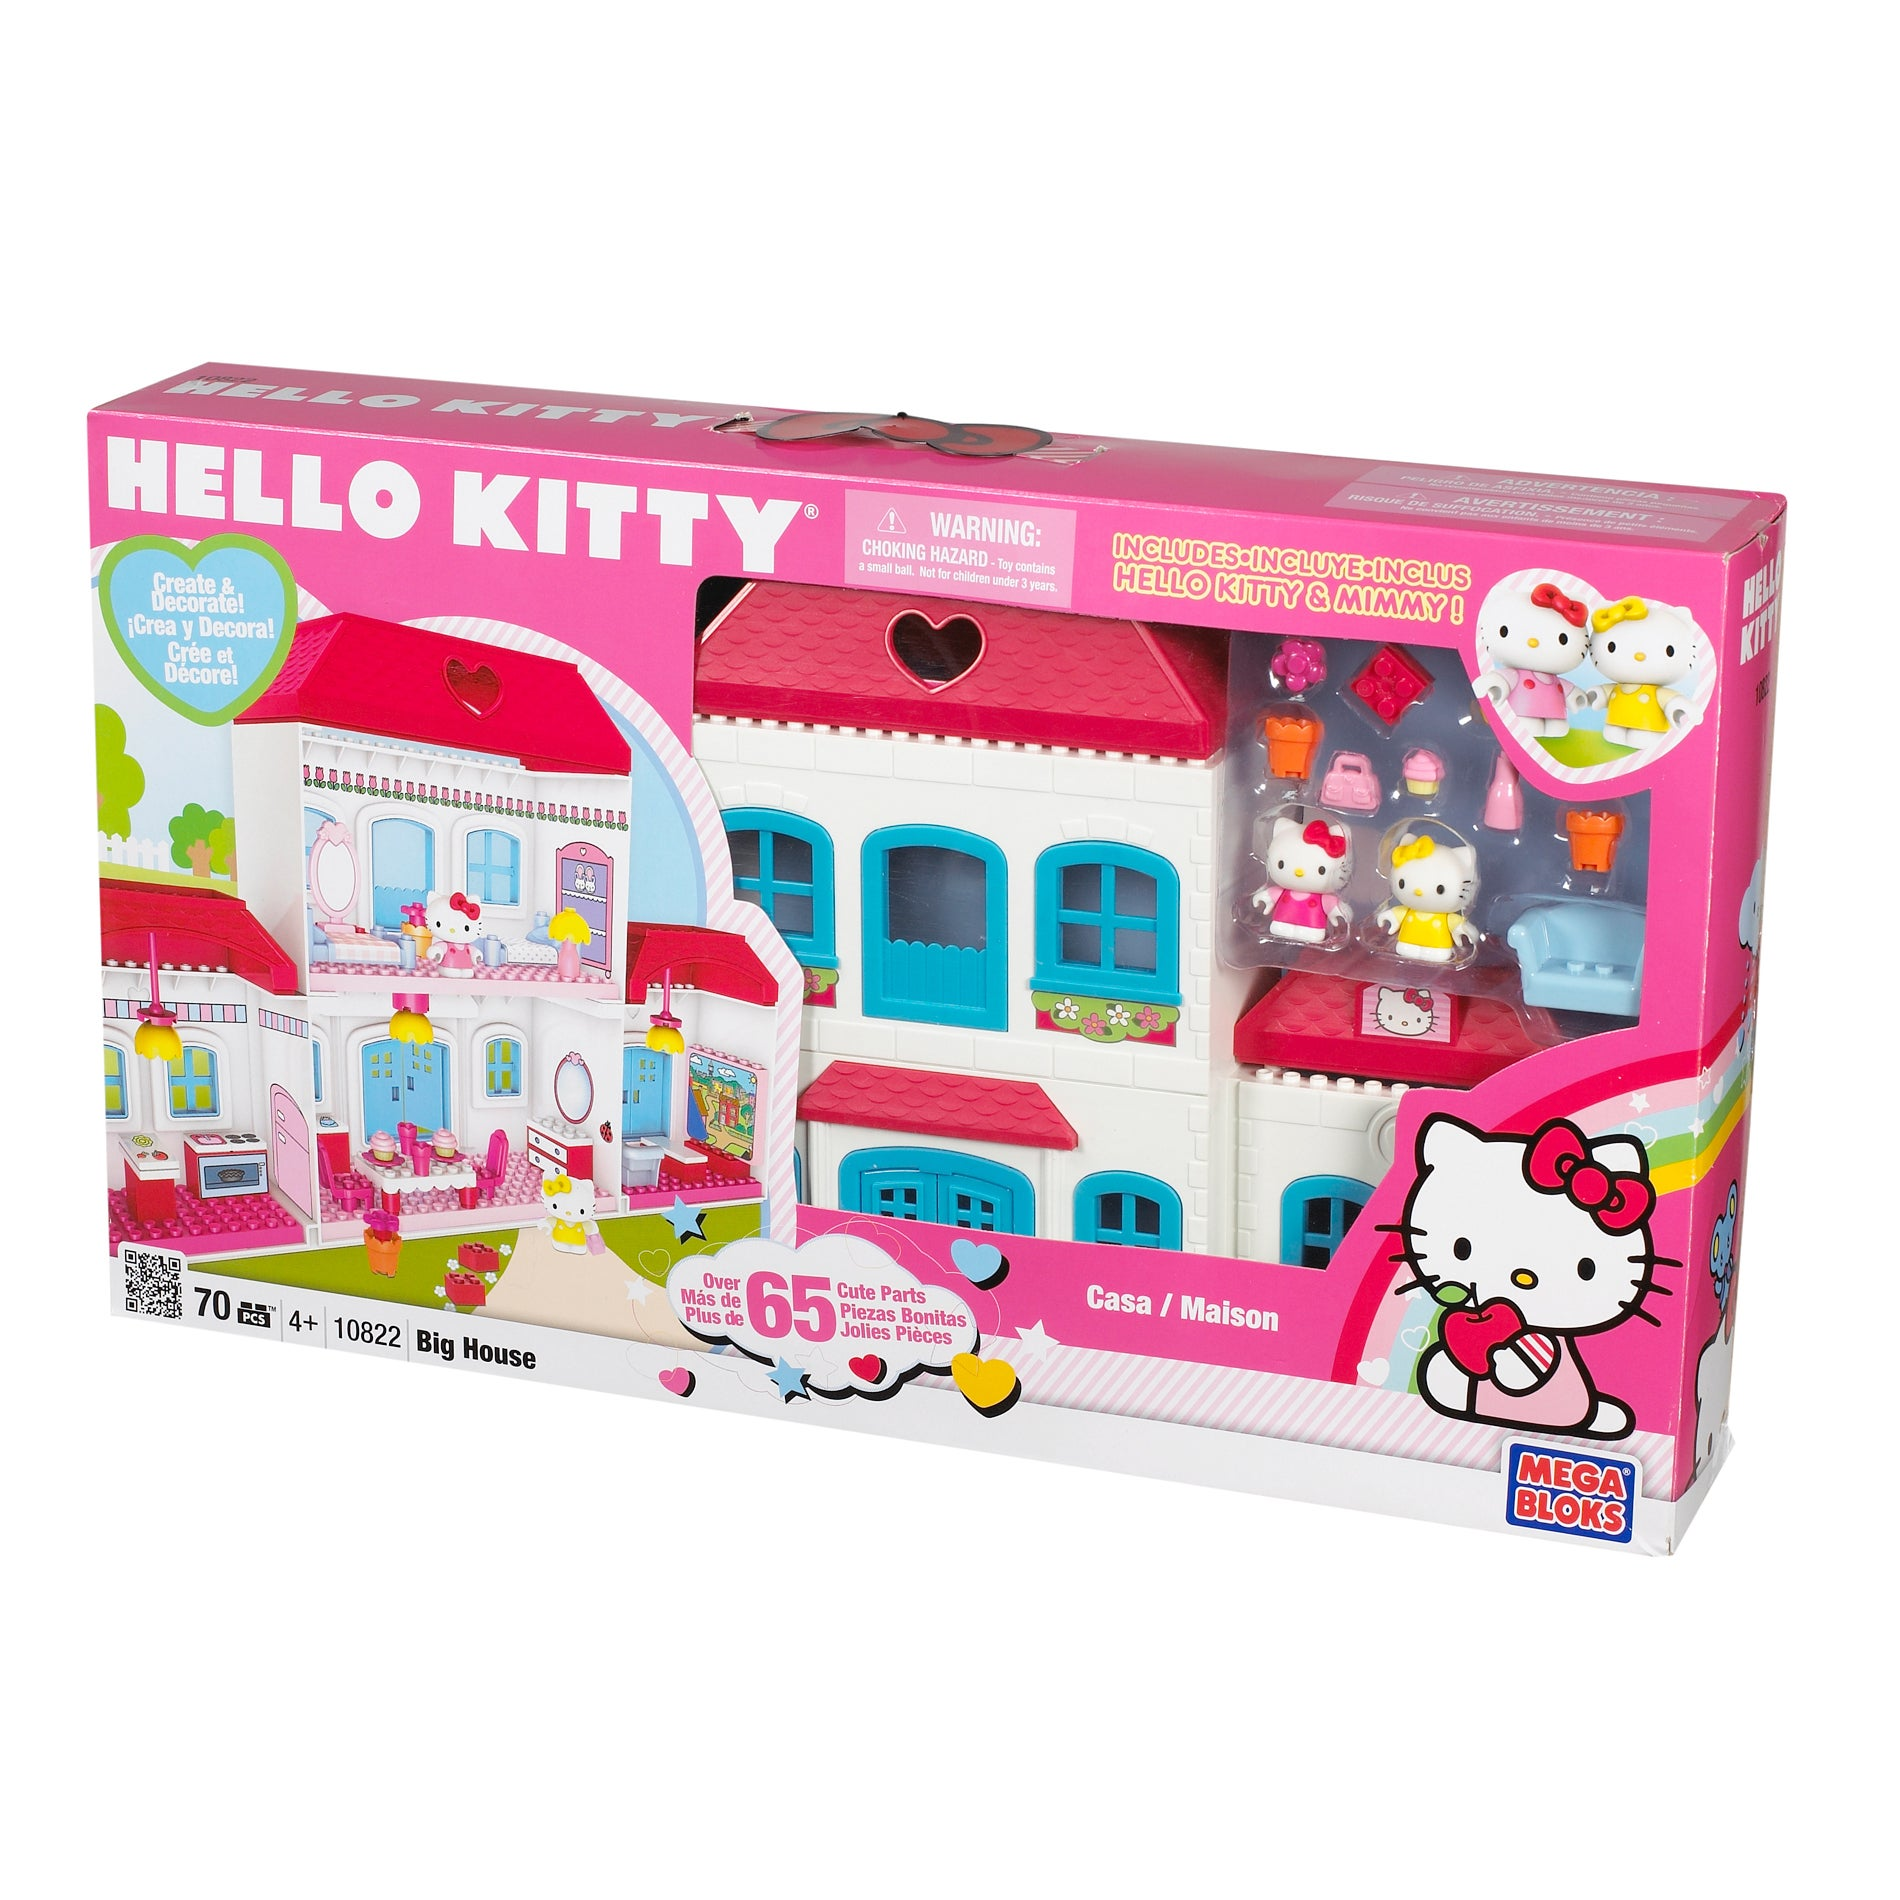 Hello Kitty Toys Set : Shop mega bloks hello kitty house play set free shipping